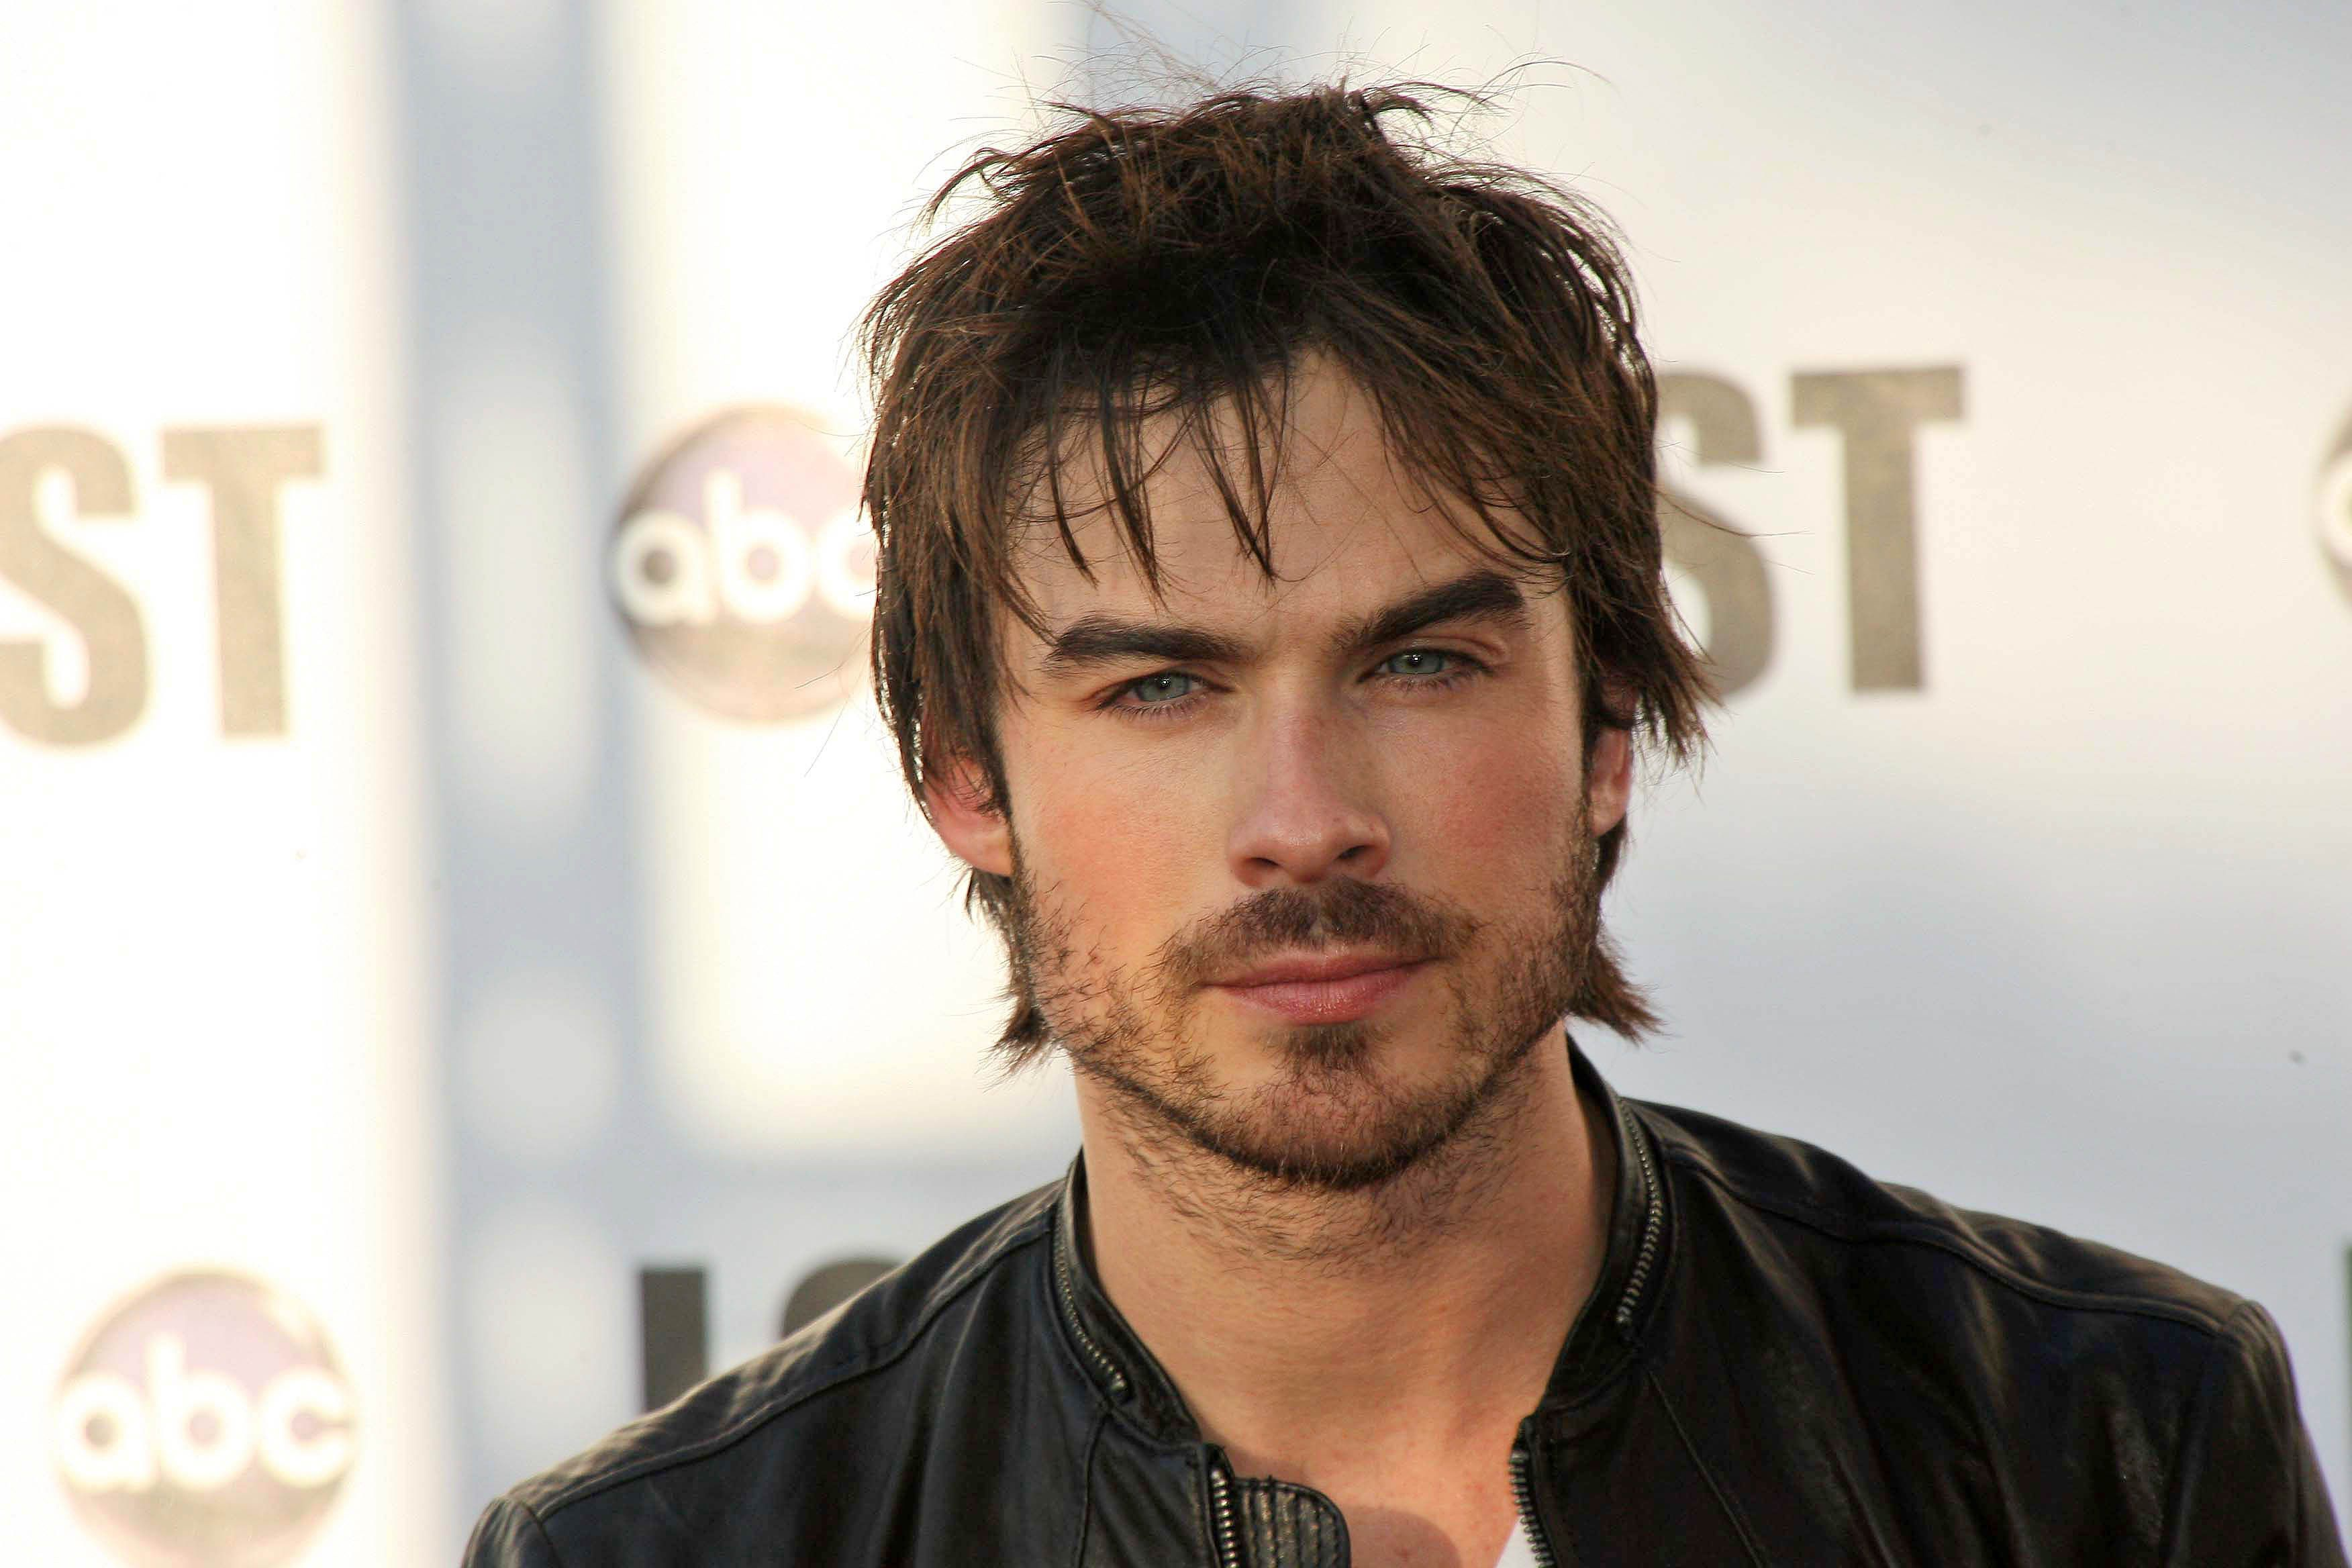 Ian Somerhalder wears a leather jacket with messy hair.